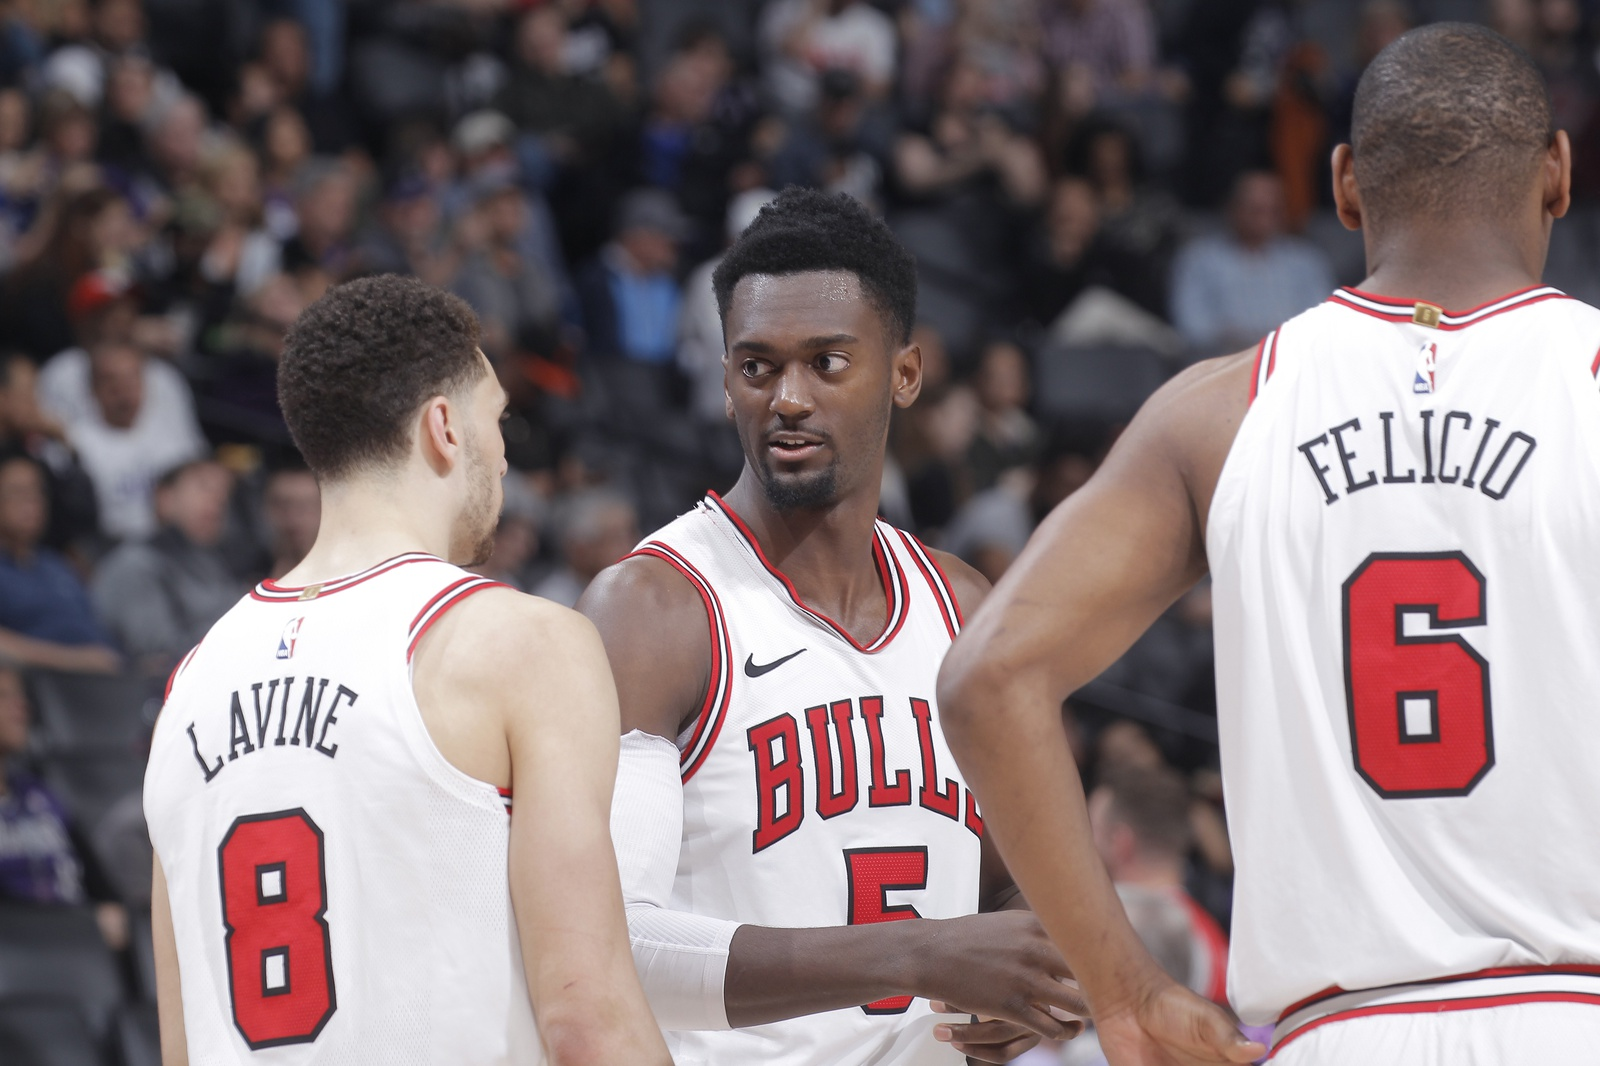 Zach Lavine #8 and Bobby Portis #5 of the Chicago Bulls talk during the game against the Sacramento Kings on February 5, 2018 at Golden 1 Center in Sacramento, California.